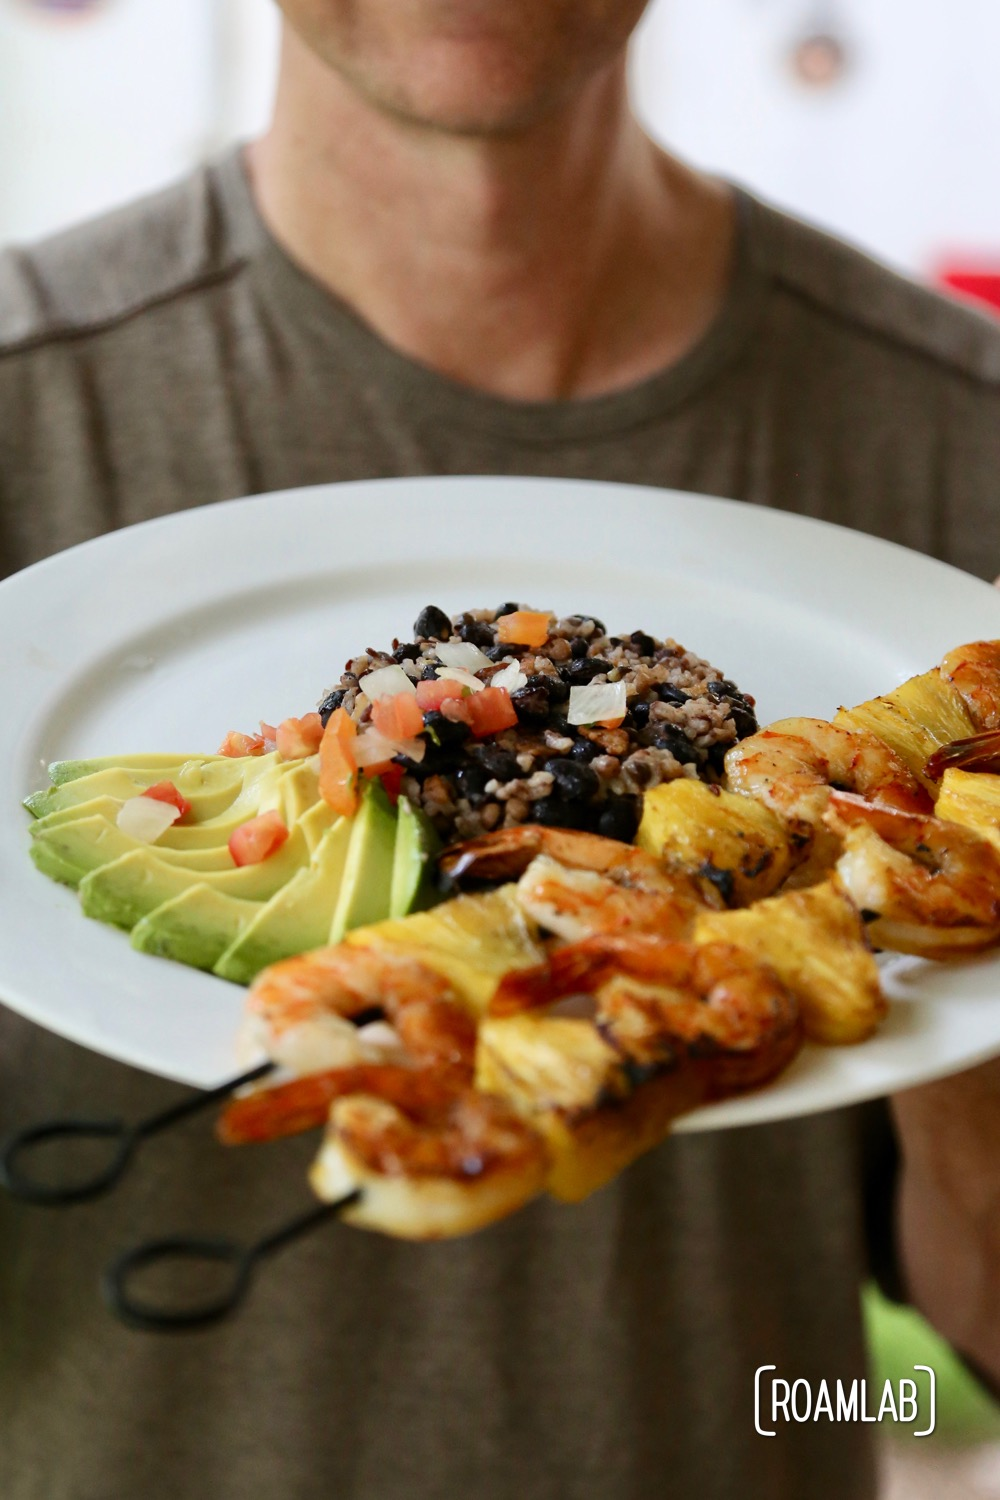 Pineapple shrimp skewers with avocado, beans, rice, and pico de gallo.